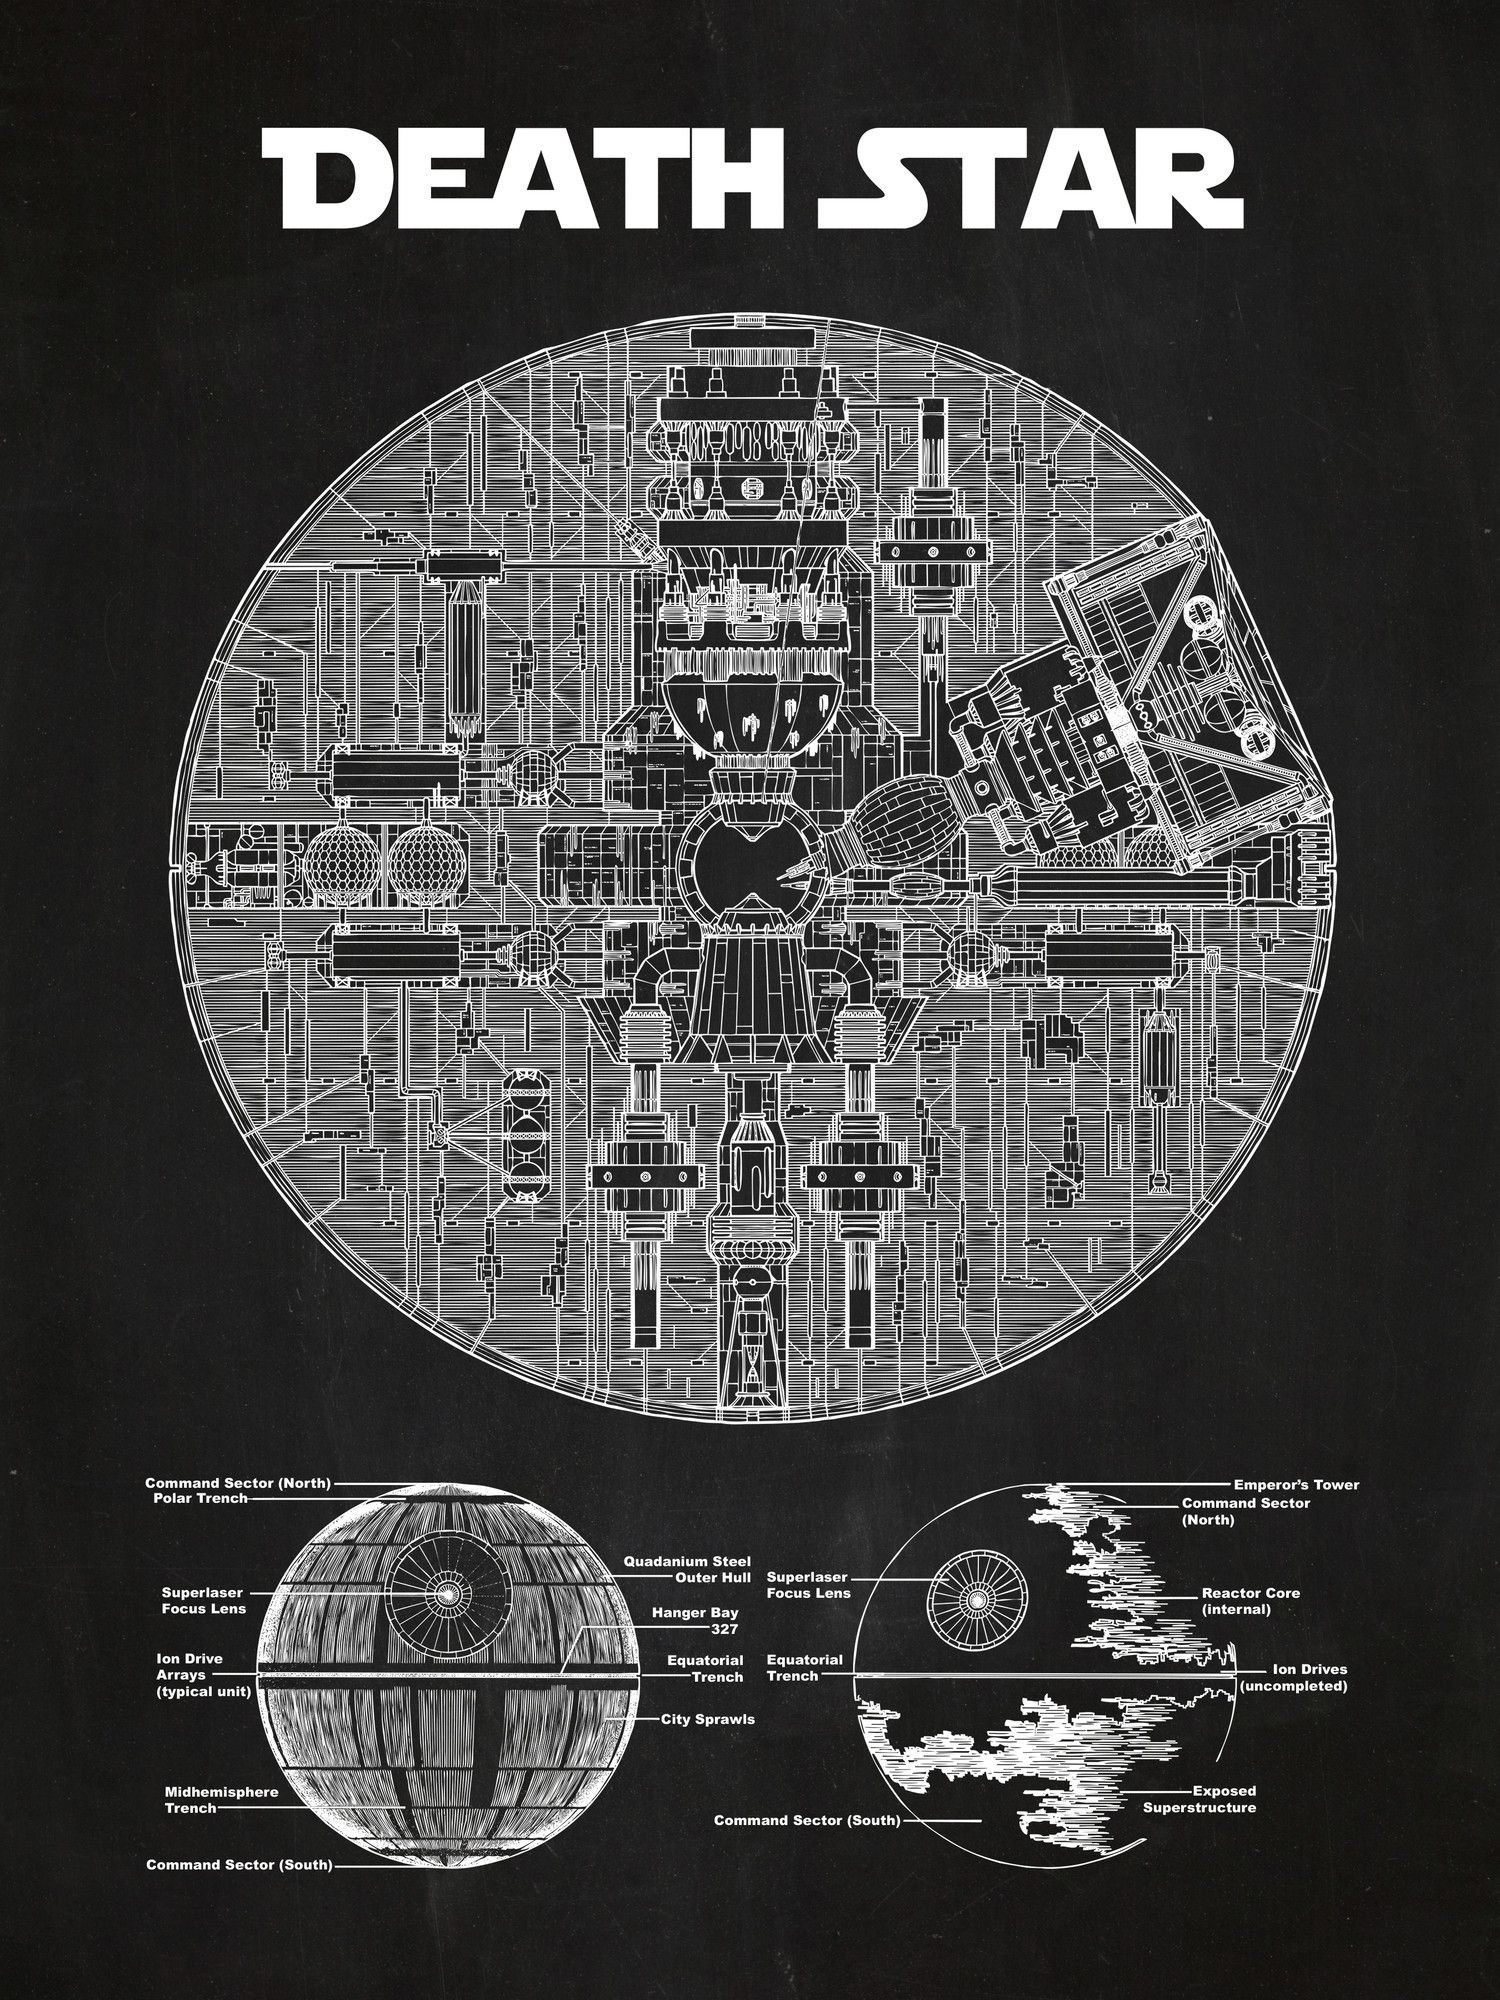 Star wars death star blueprint graphic art poster in chalkboard star wars death star blueprint graphic art poster in chalkboardwhite ink malvernweather Images